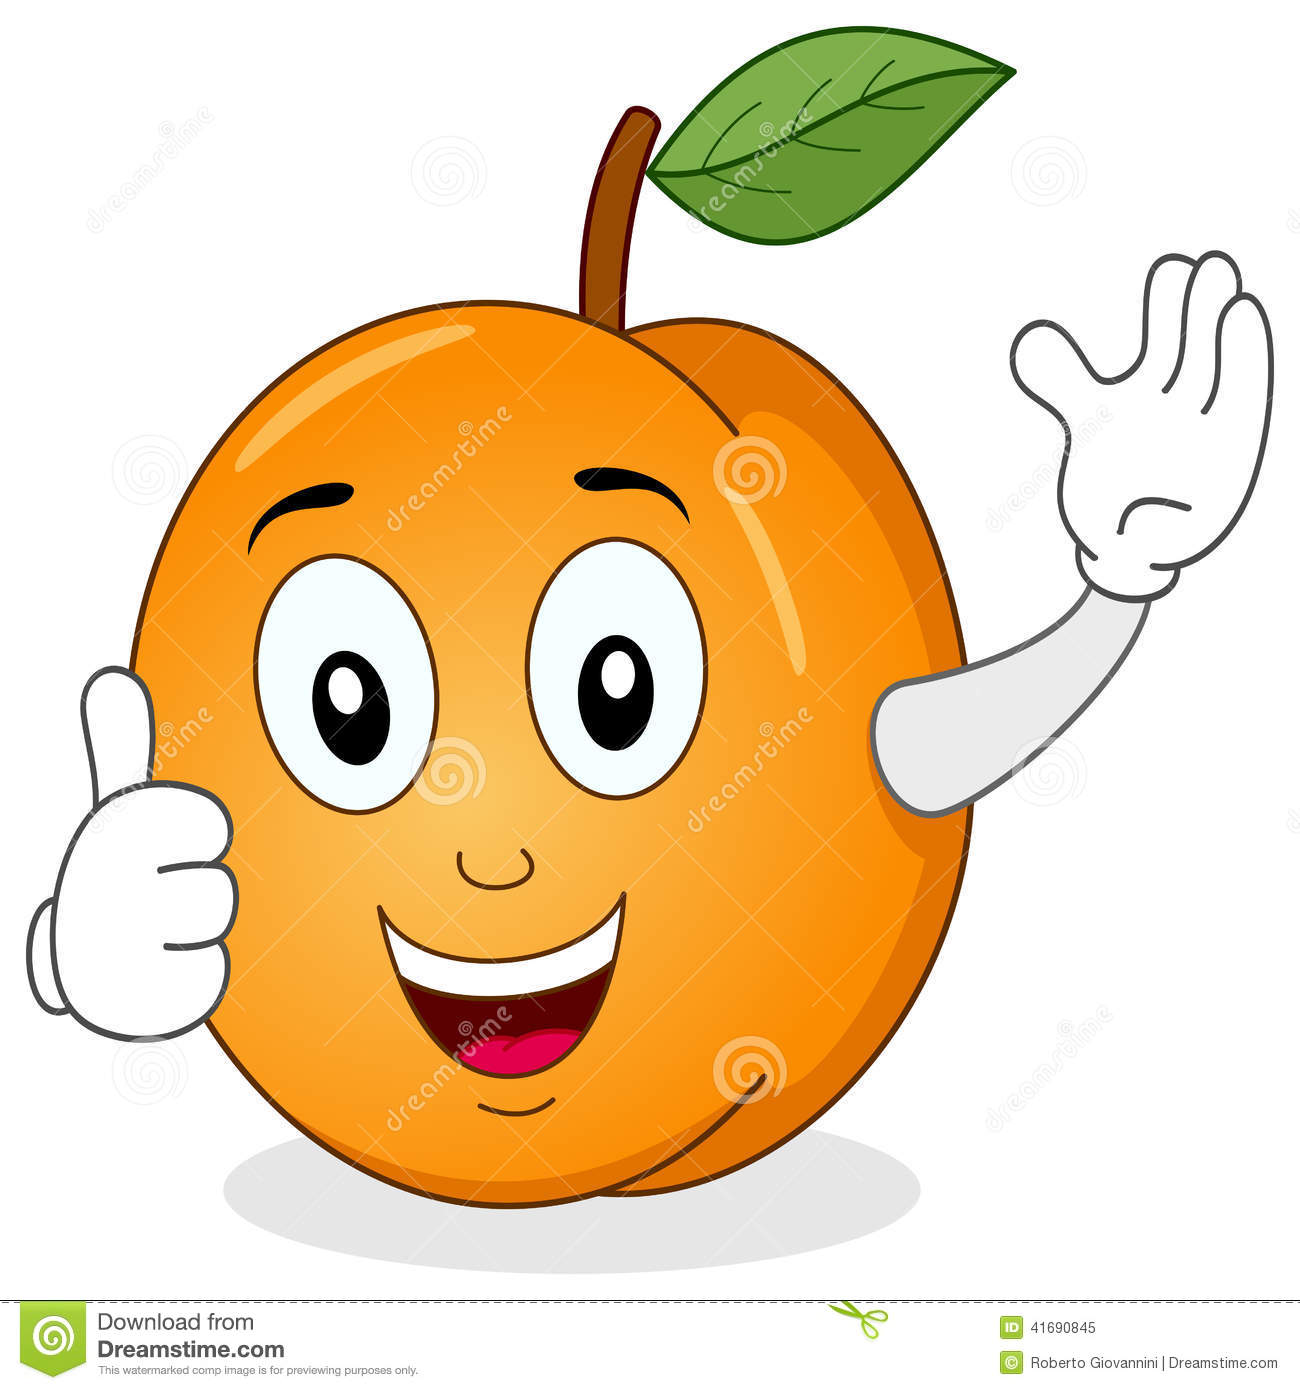 Funny Cartoon Apricot Character Smiling With Thumbs Up Isolated On